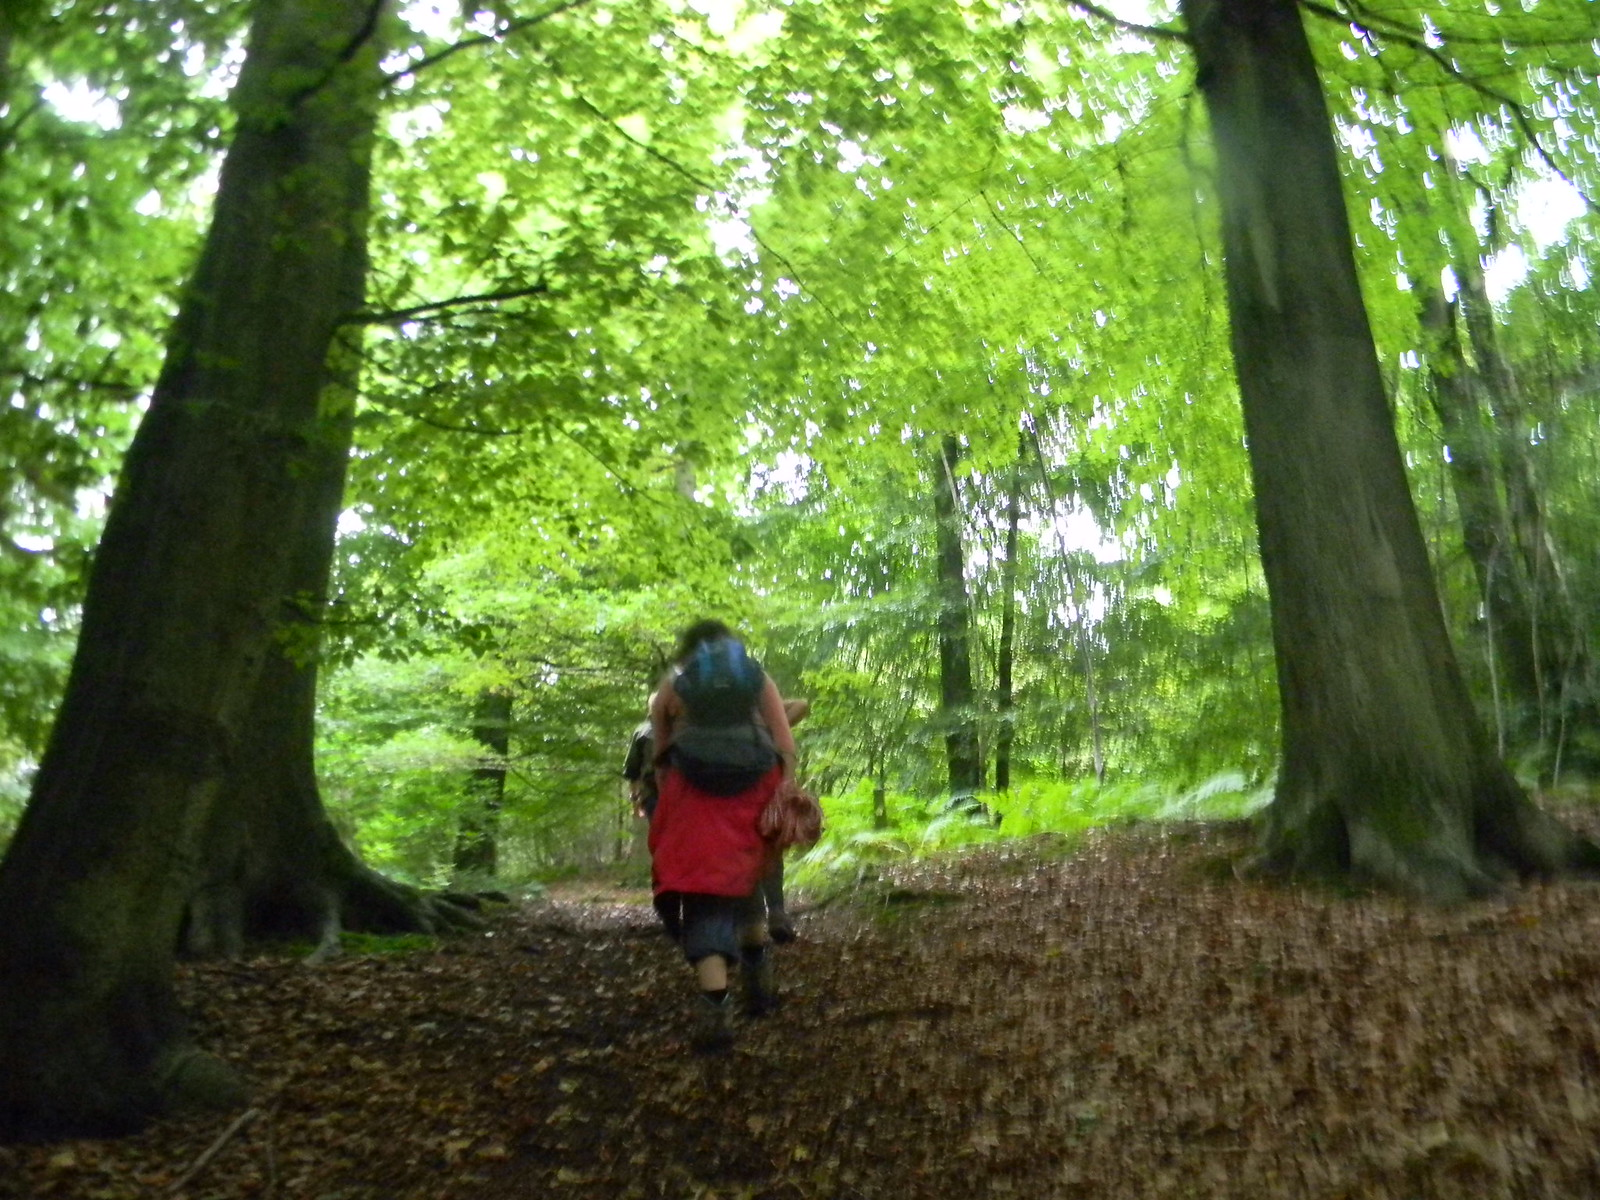 Int he woods Holmwood to Gomshall